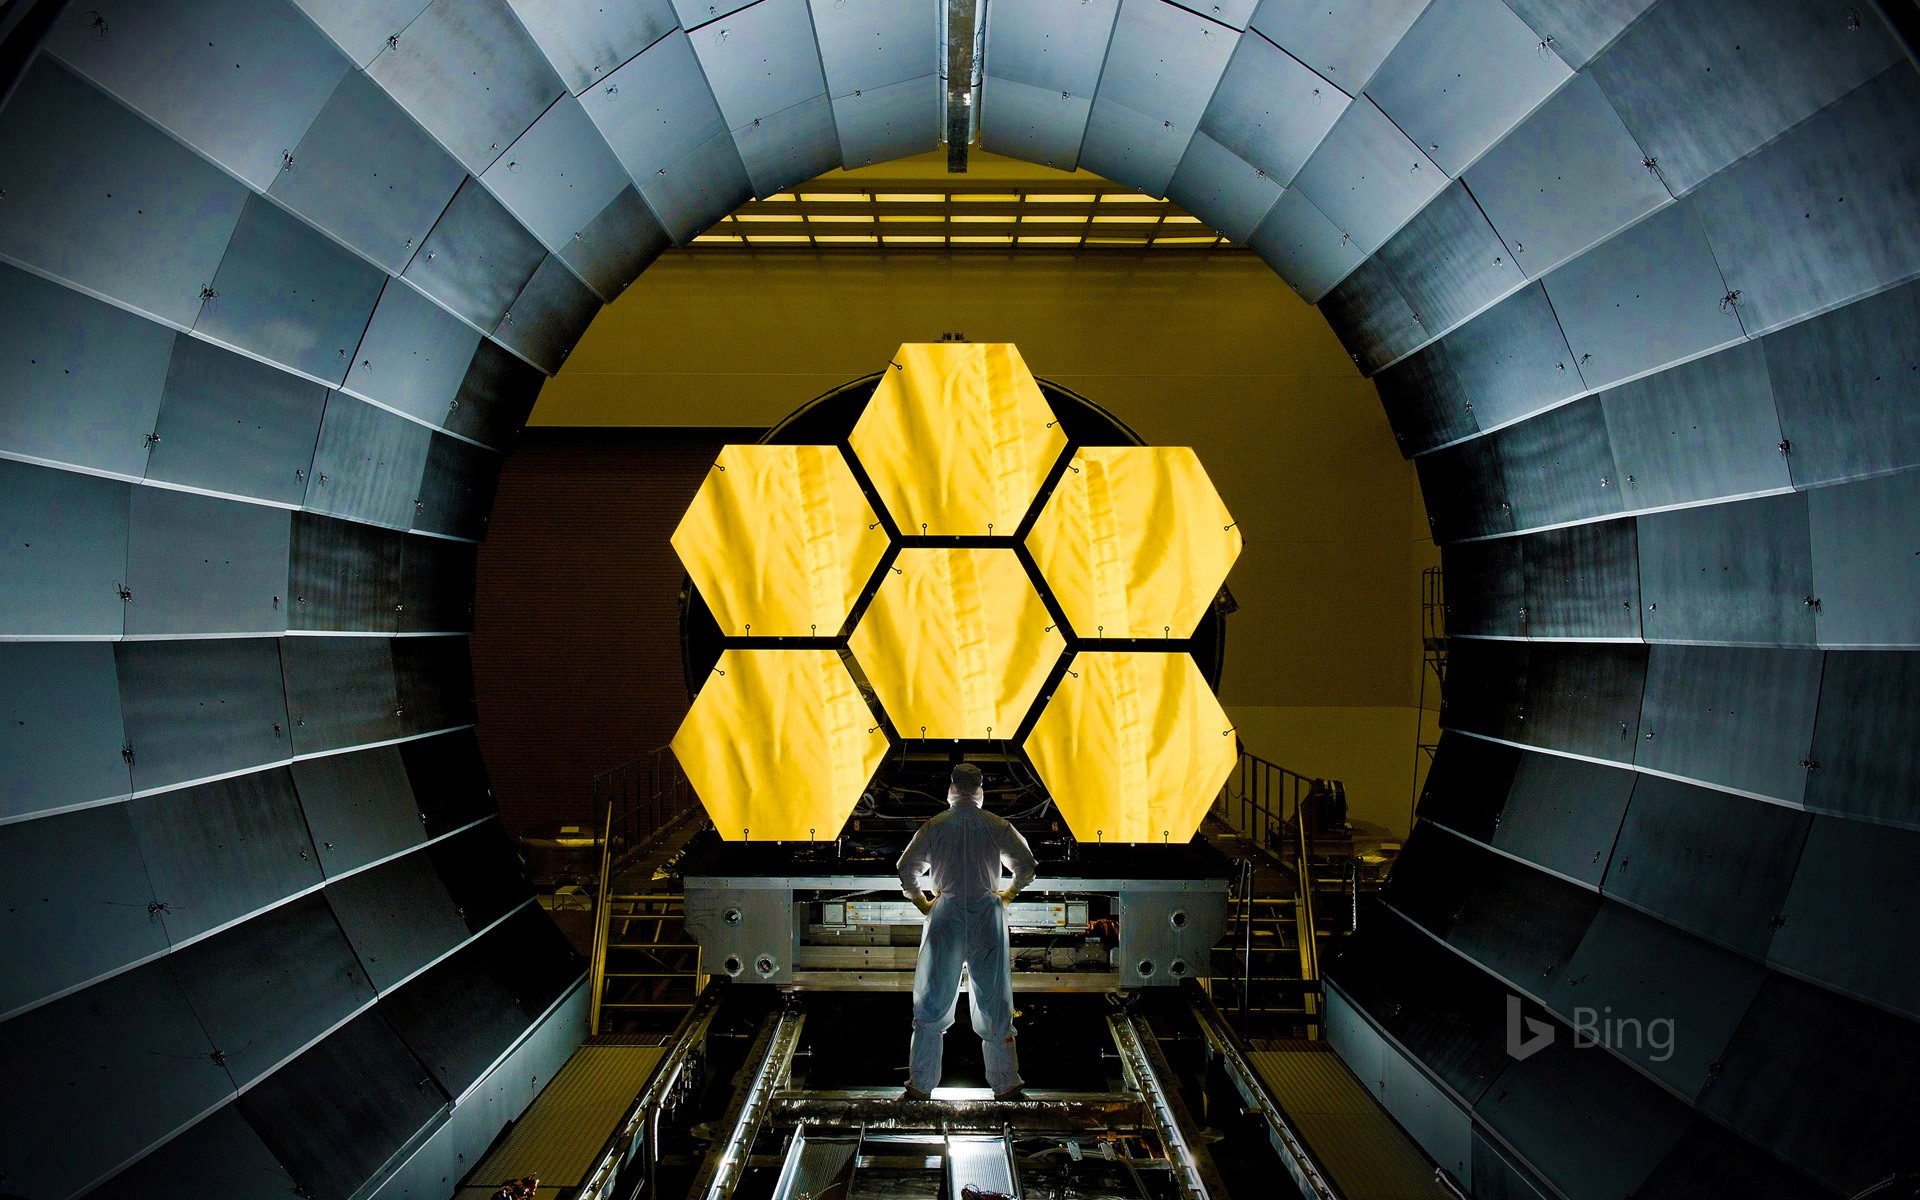 Testing mirror segments for the James Webb Space Telescope